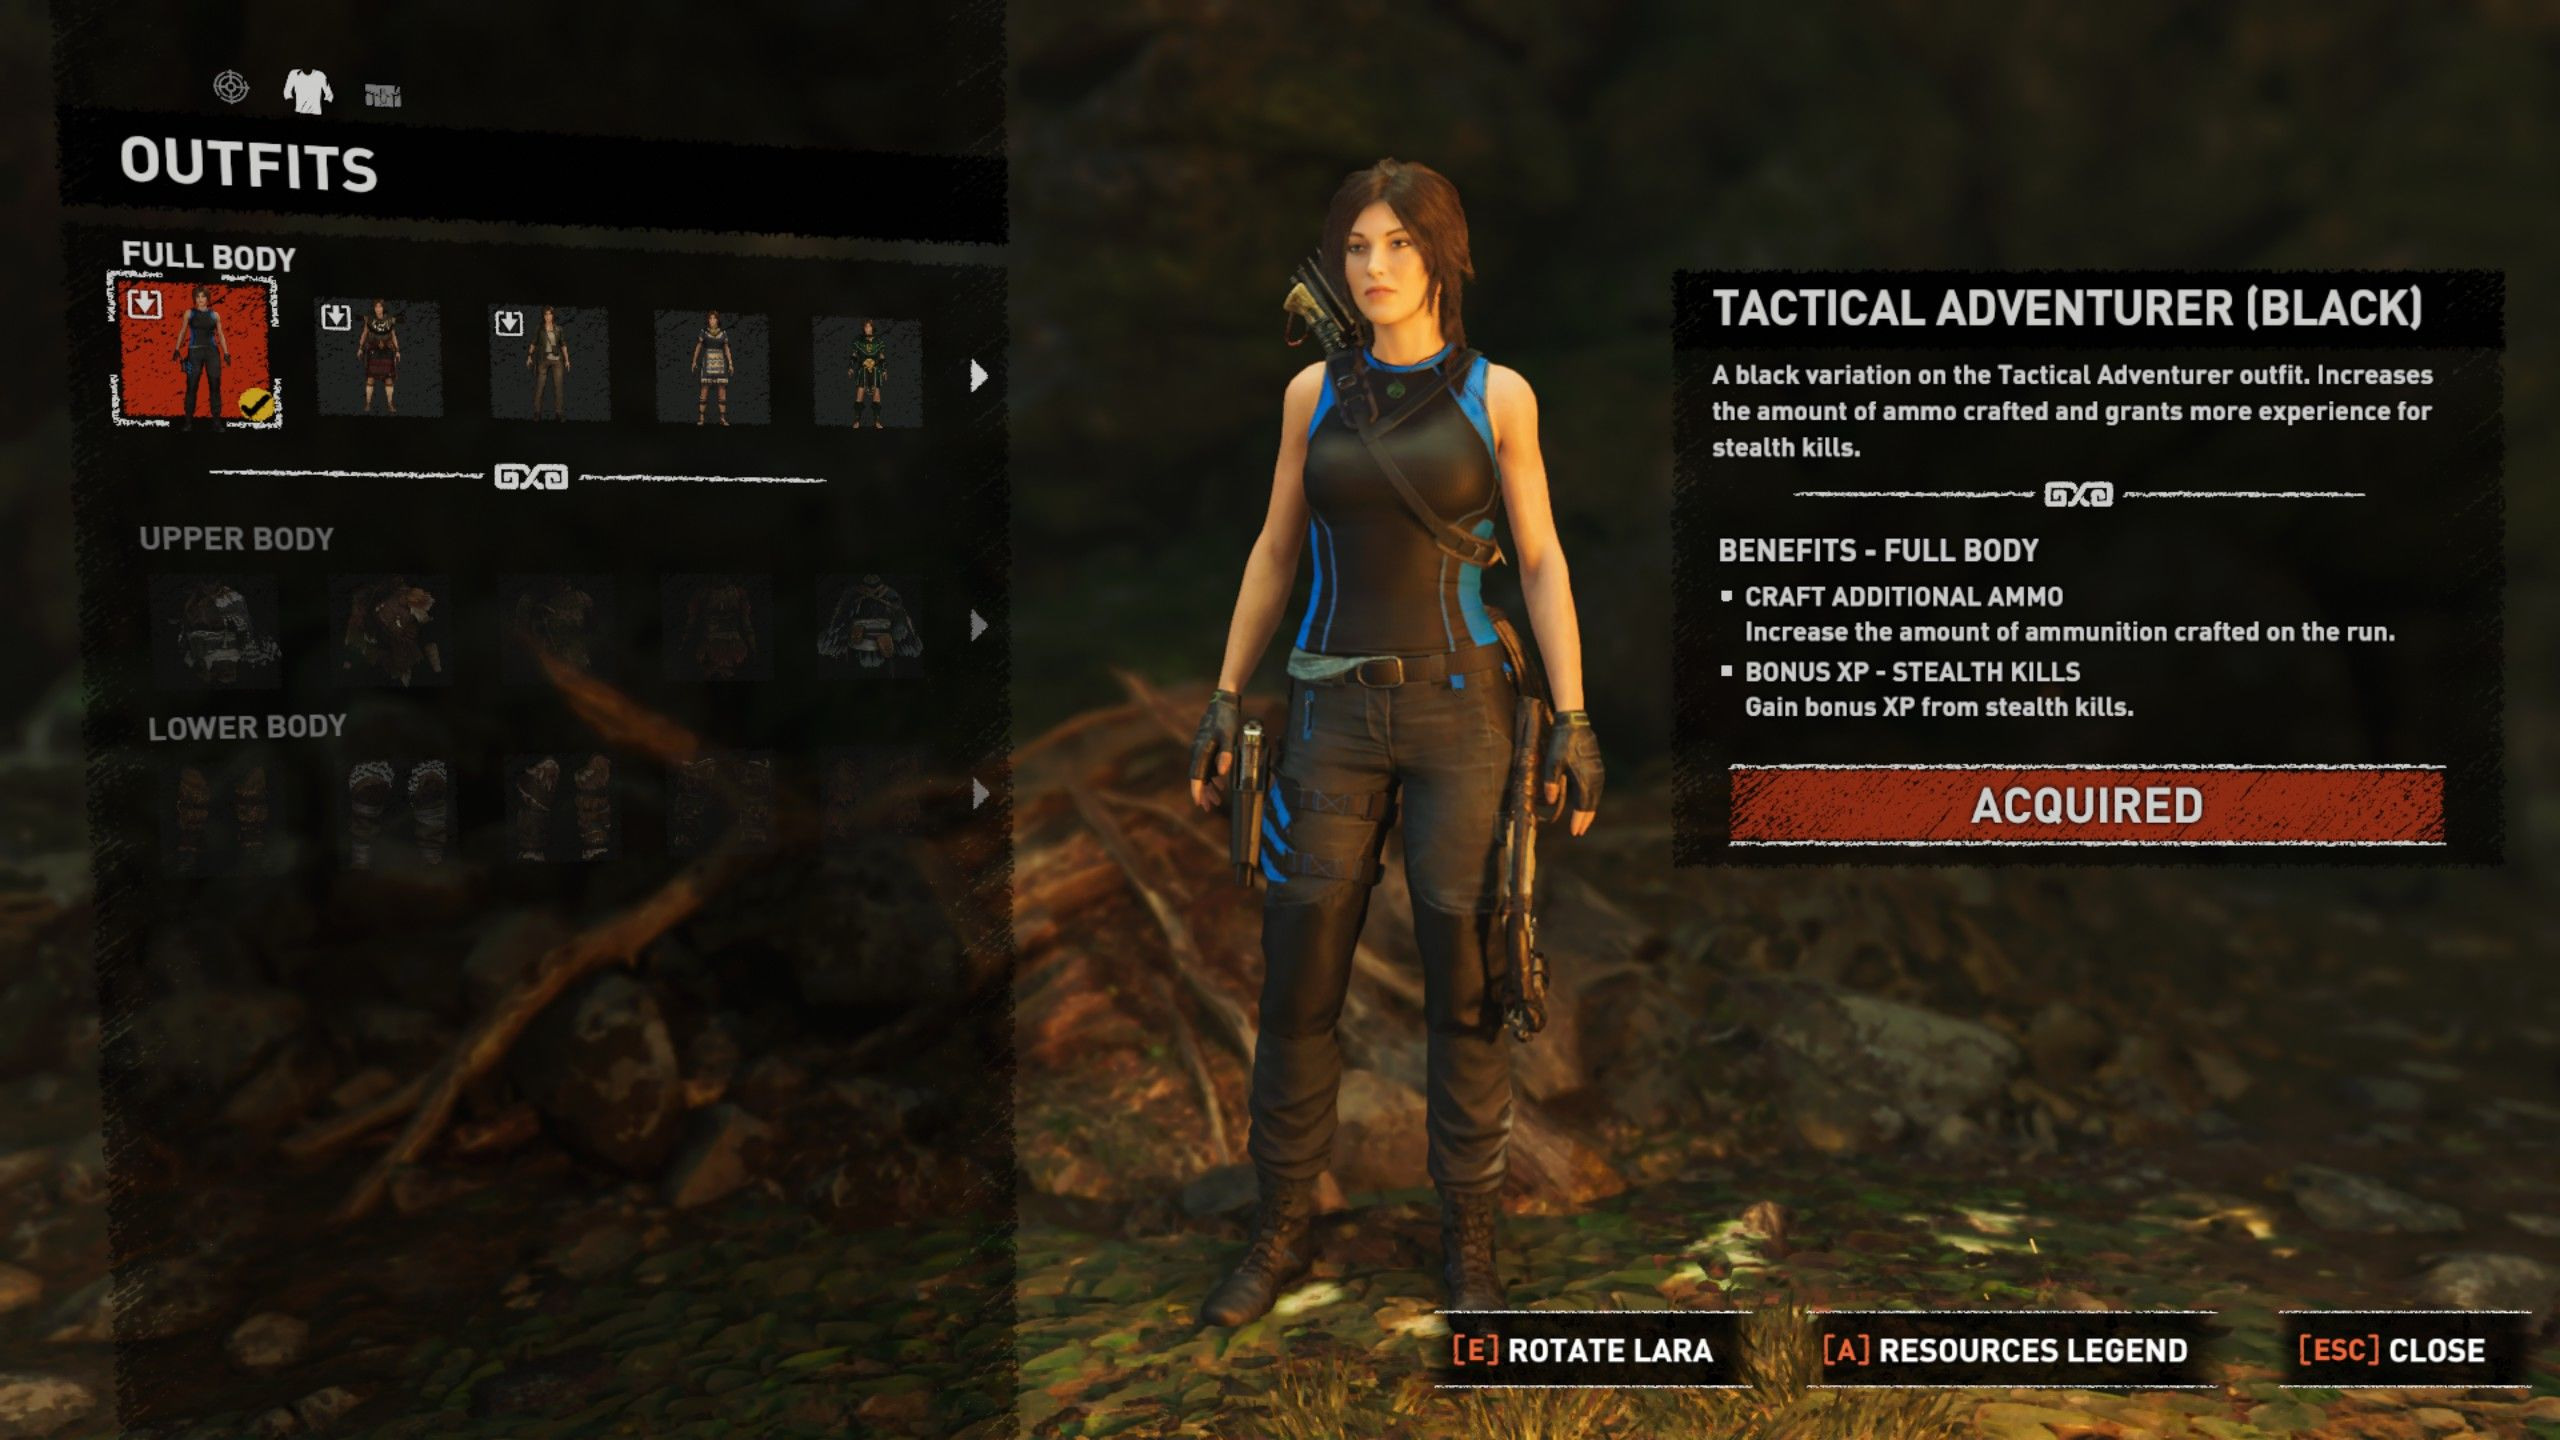 Shadow of the Tomb Raider: Croft Edition Extras Windows Tactical Adventurer (Black) outfit equipped.